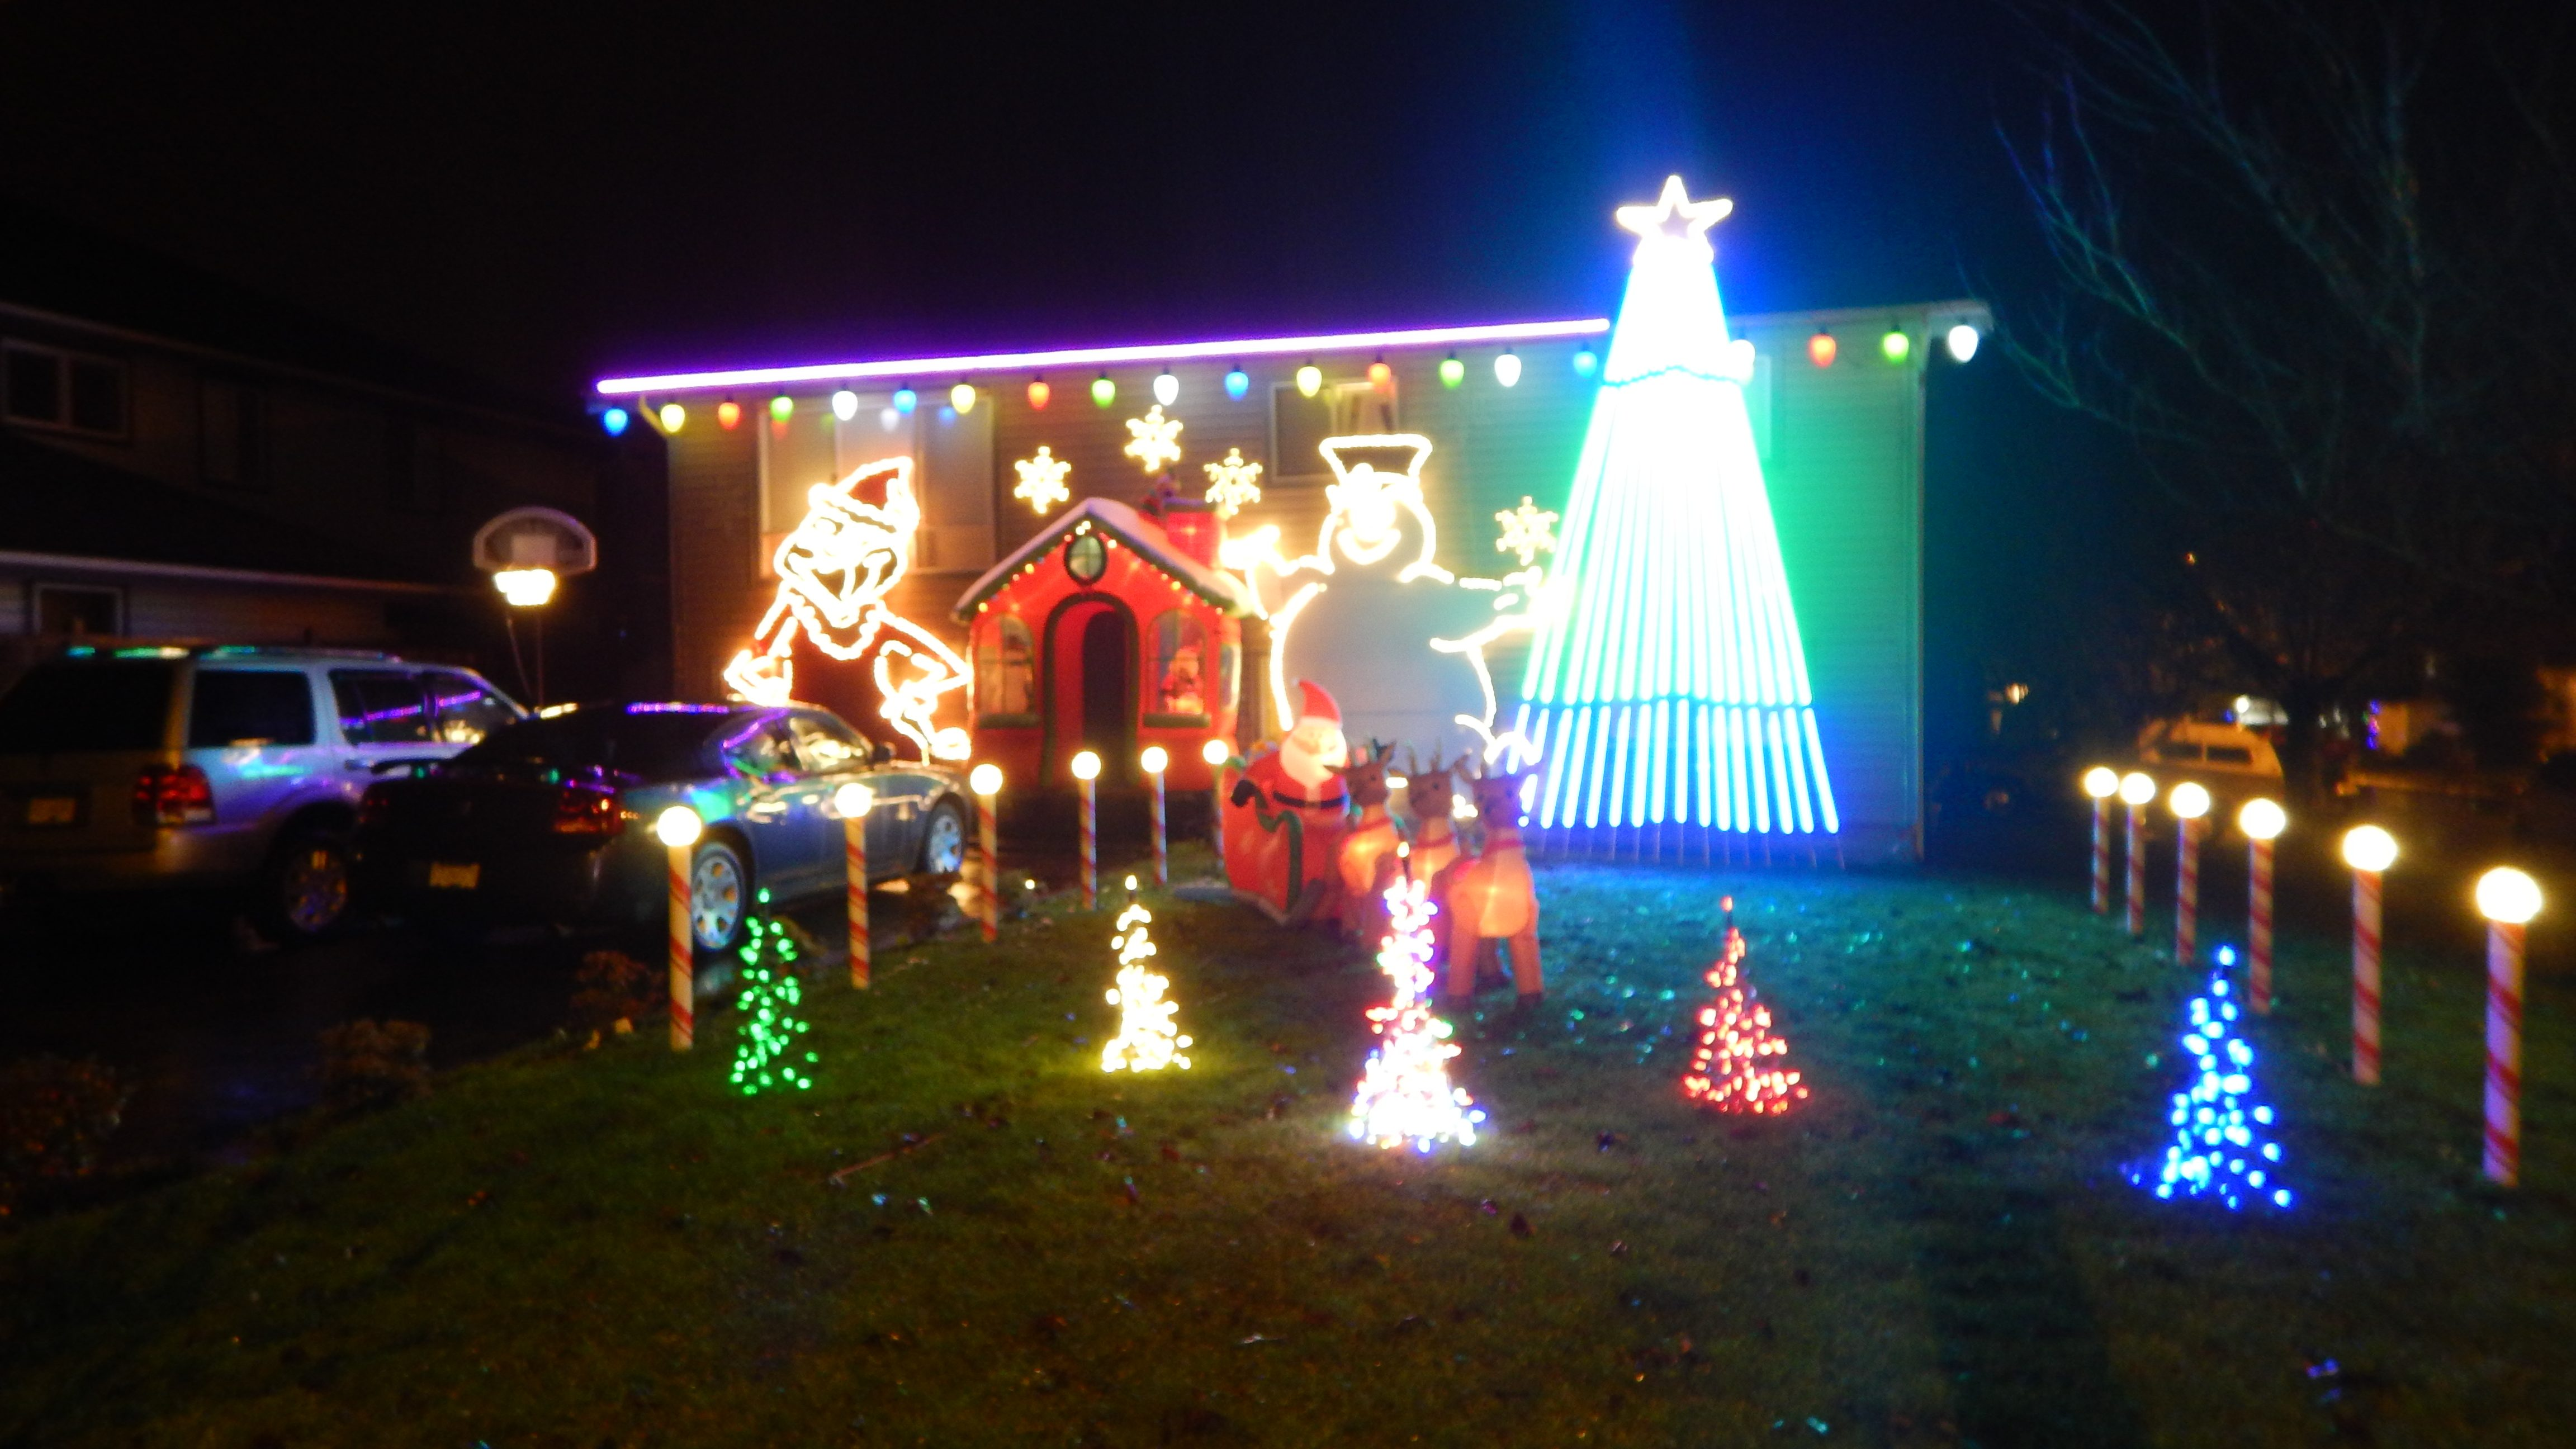 christmaswinter events - Computer Controlled Christmas Lights